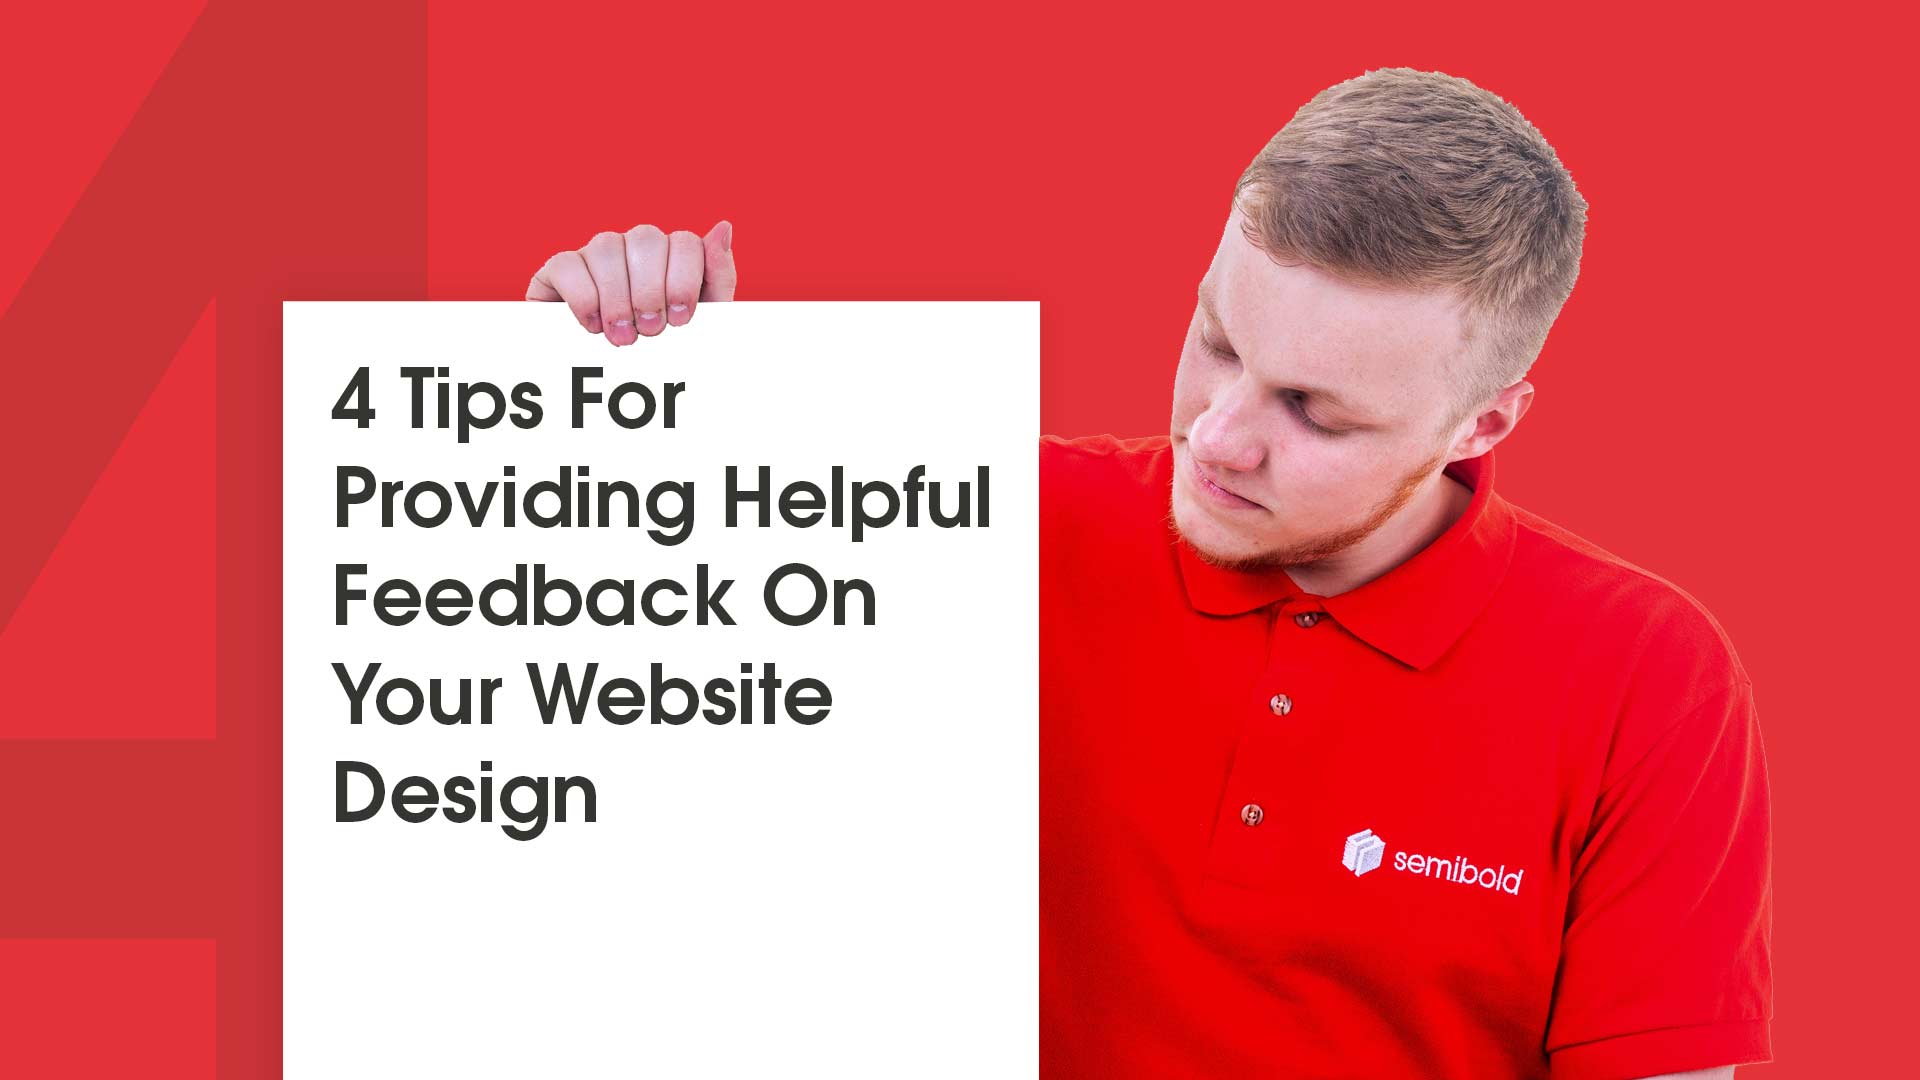 4 Tips For Providing Helpful Feedback On Your Website Design 3